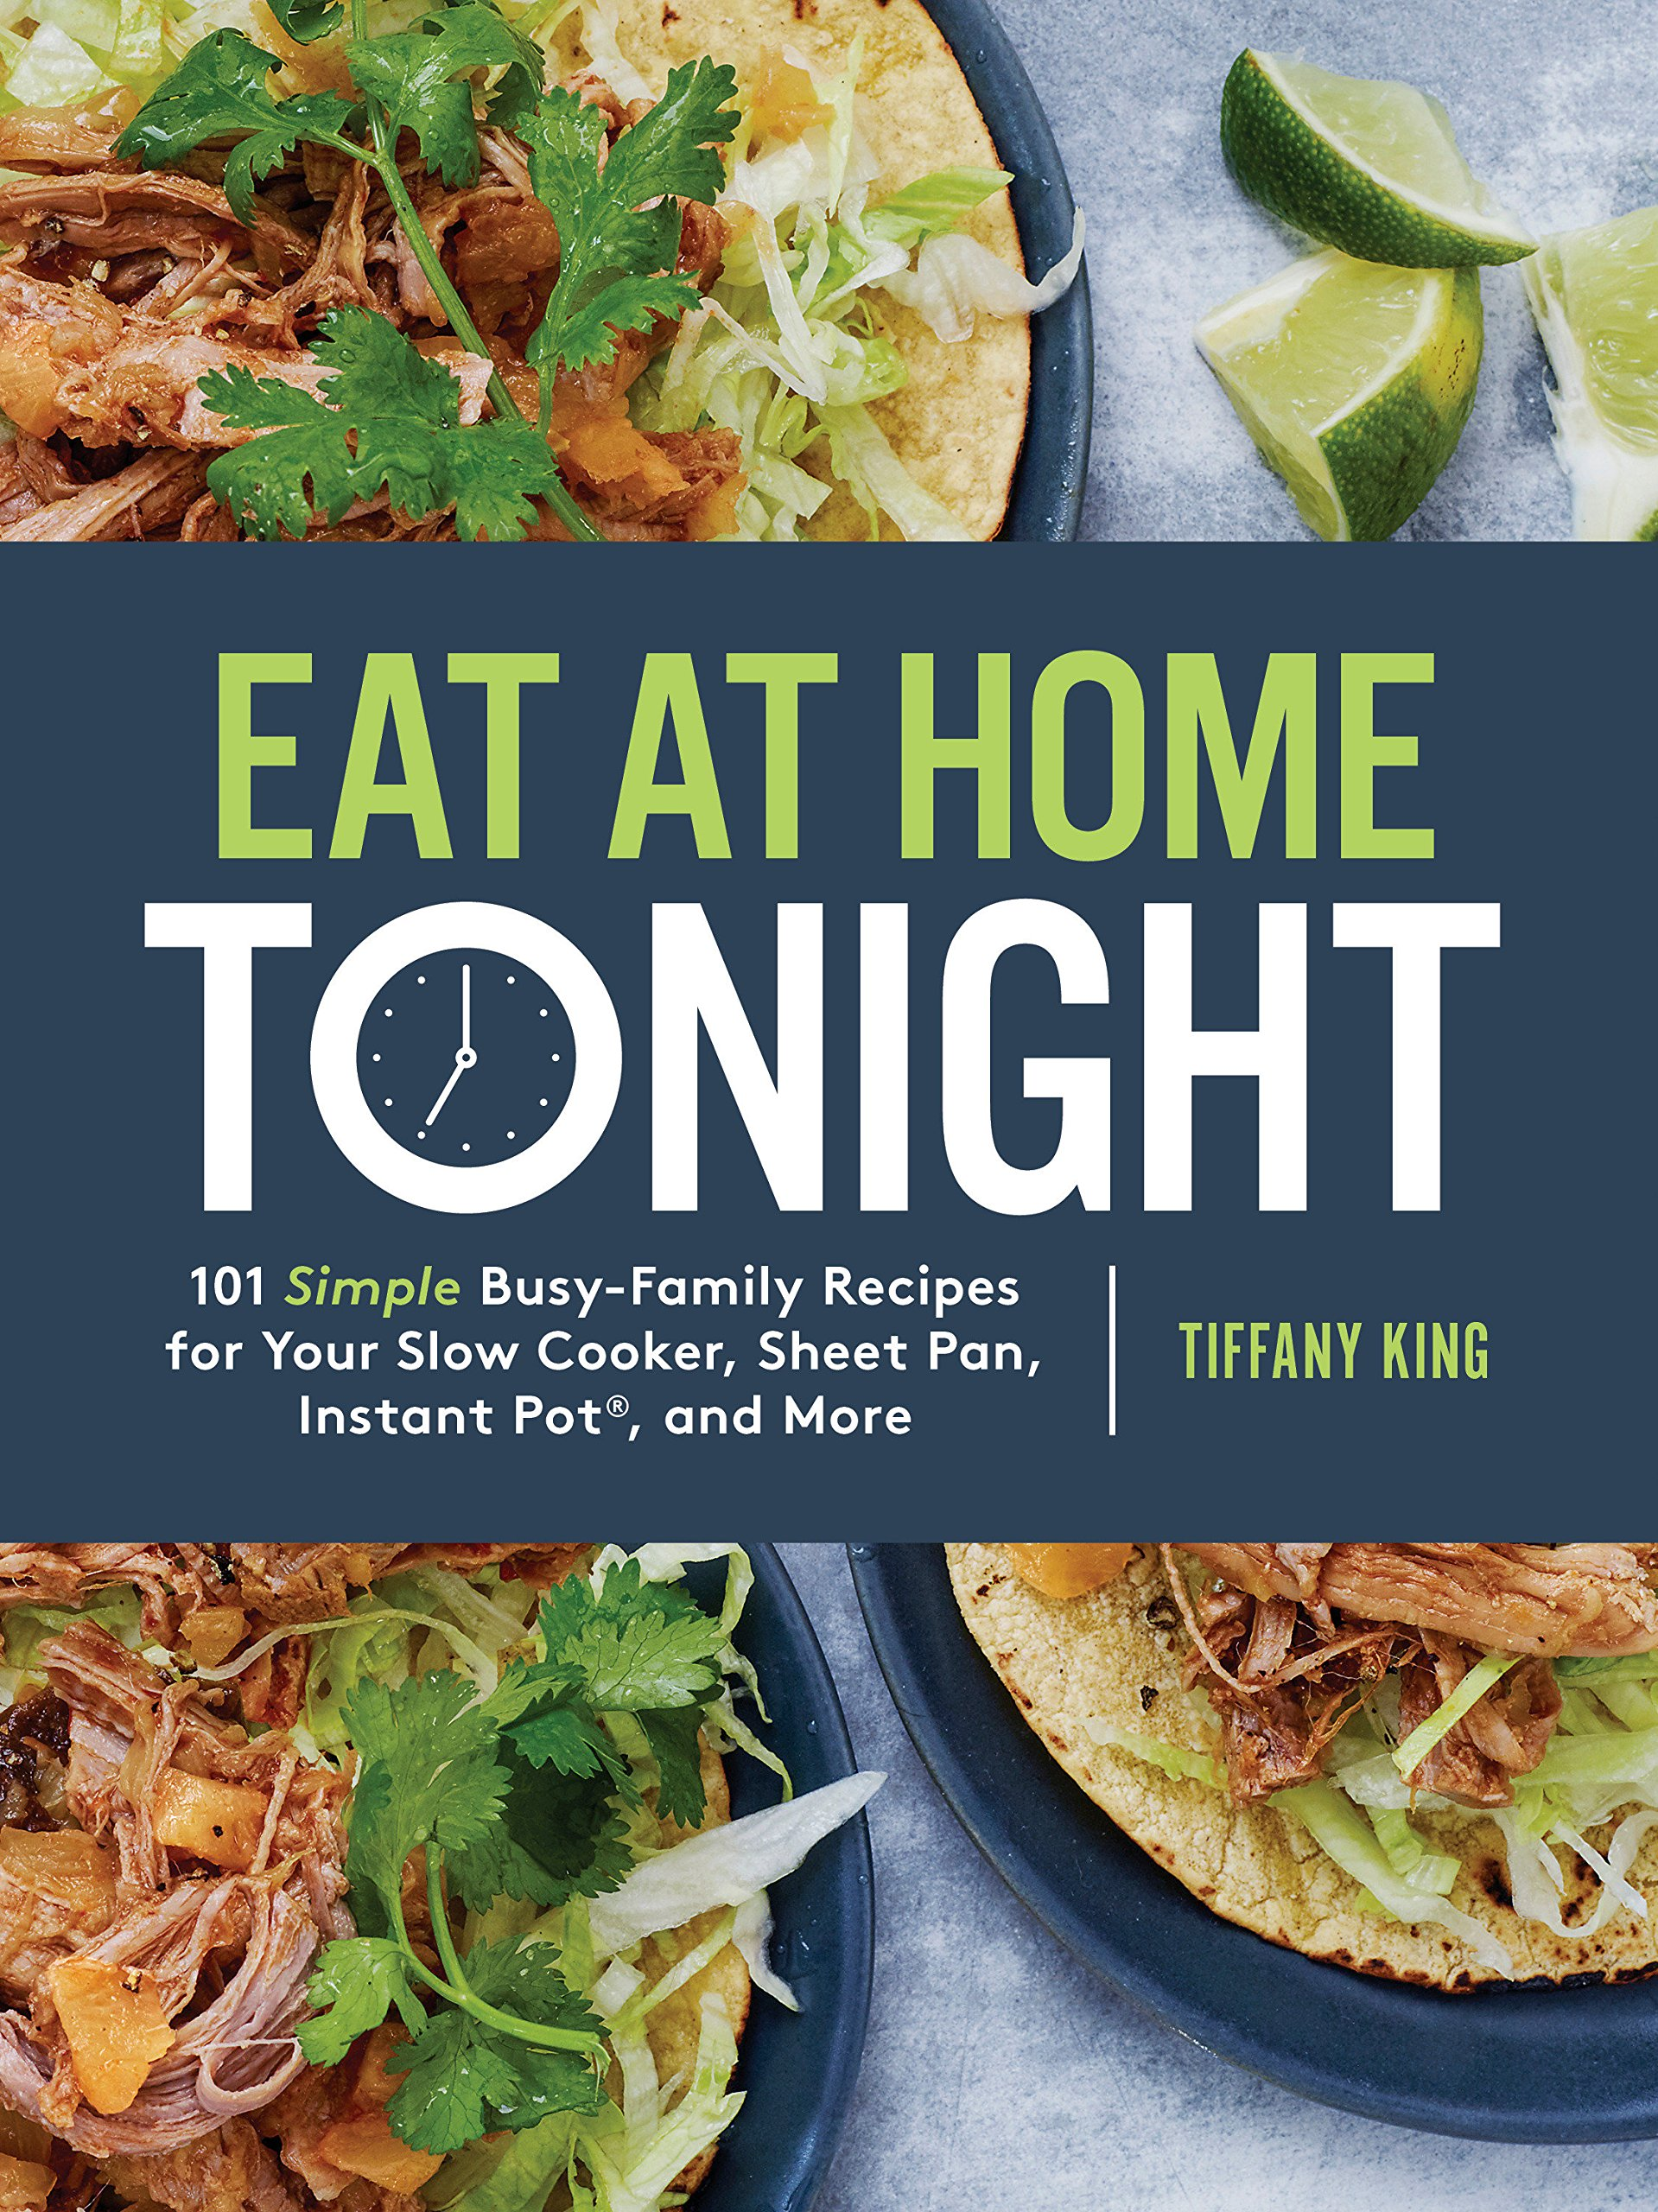 Amazon.com: Eat at Home Tonight: 101 Simple Busy-Family Recipes for Your Slow  Cooker, Sheet Pan, Instant Pot®, and More (9780735291232): Tiffany King:  Books